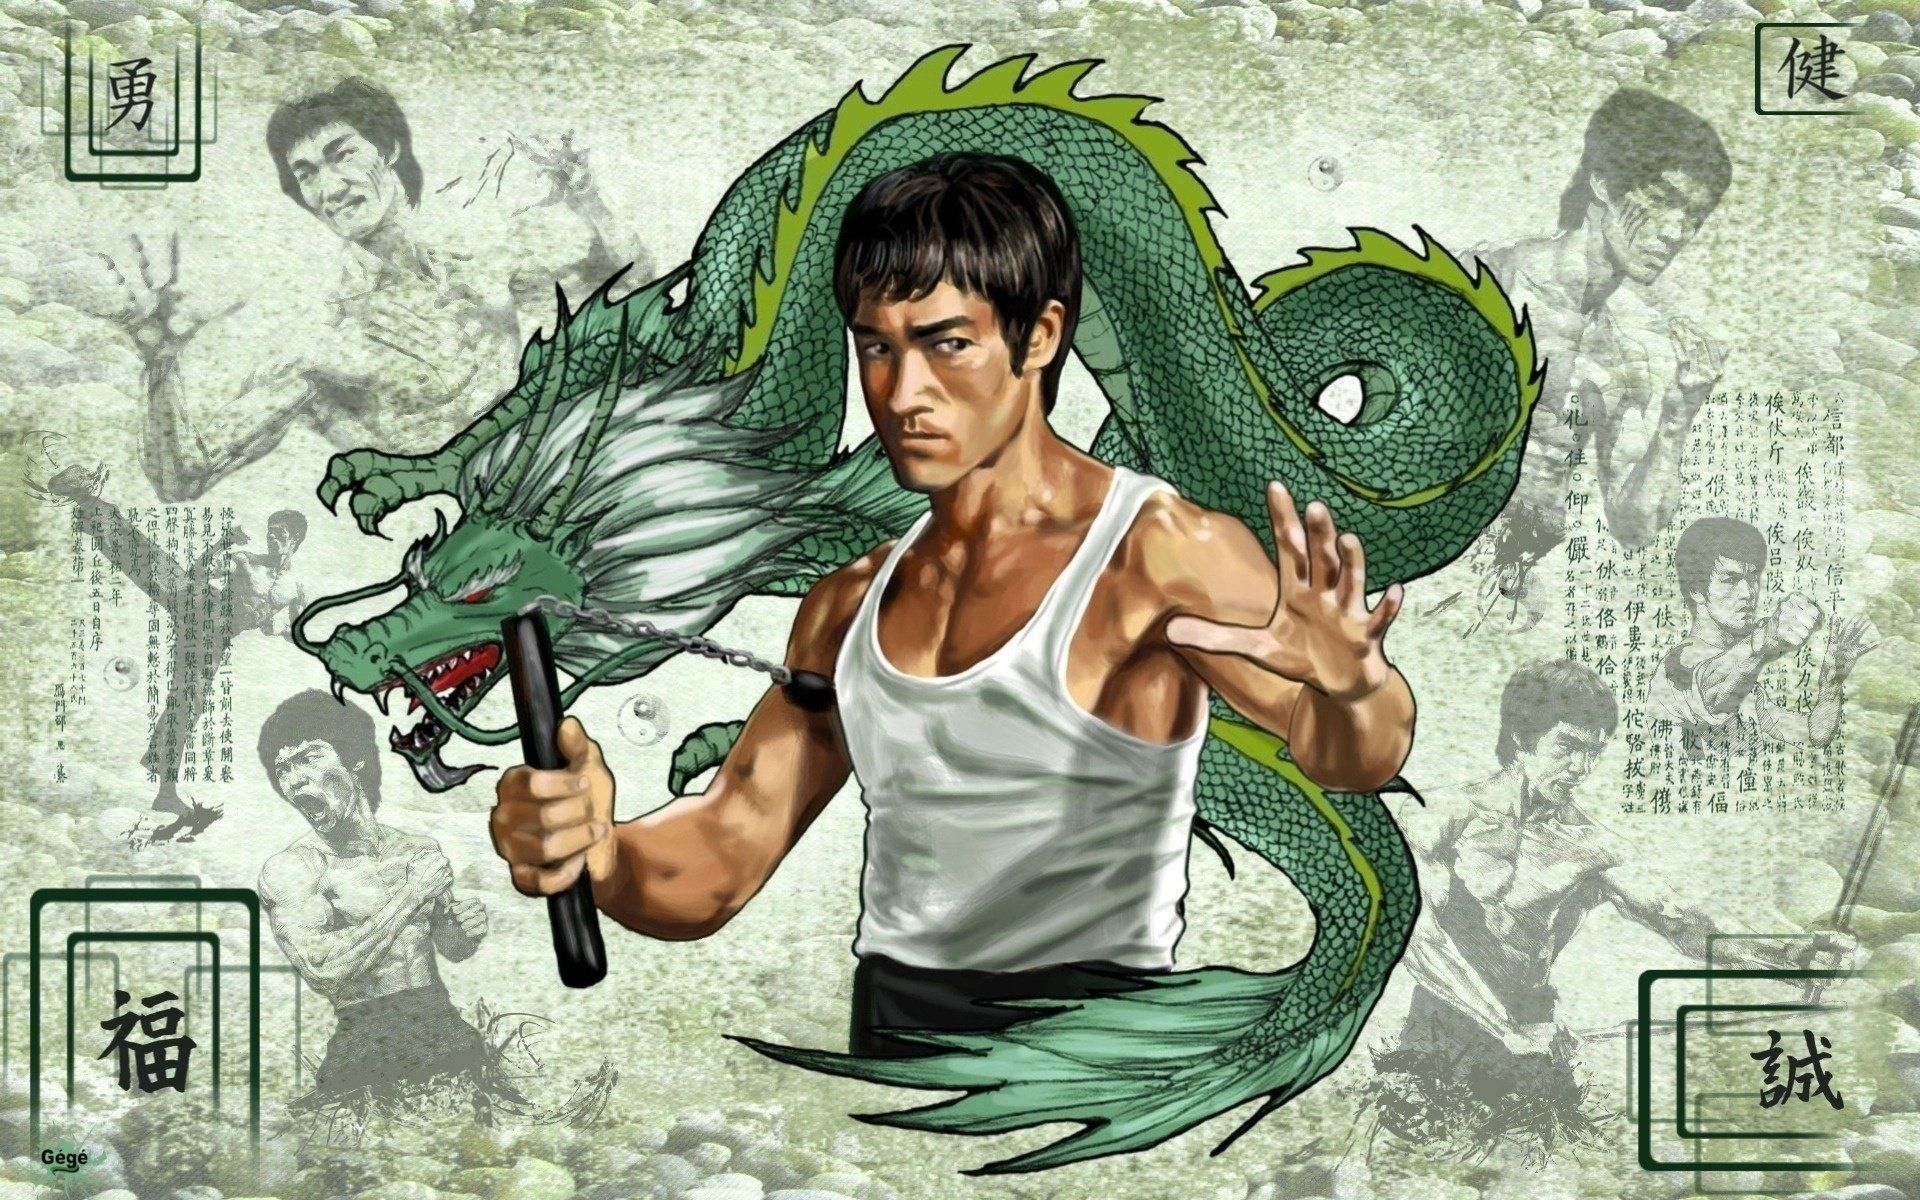 1920x1200 Martial Arts Wallpaper and Background Image   1938x946   ID:299641